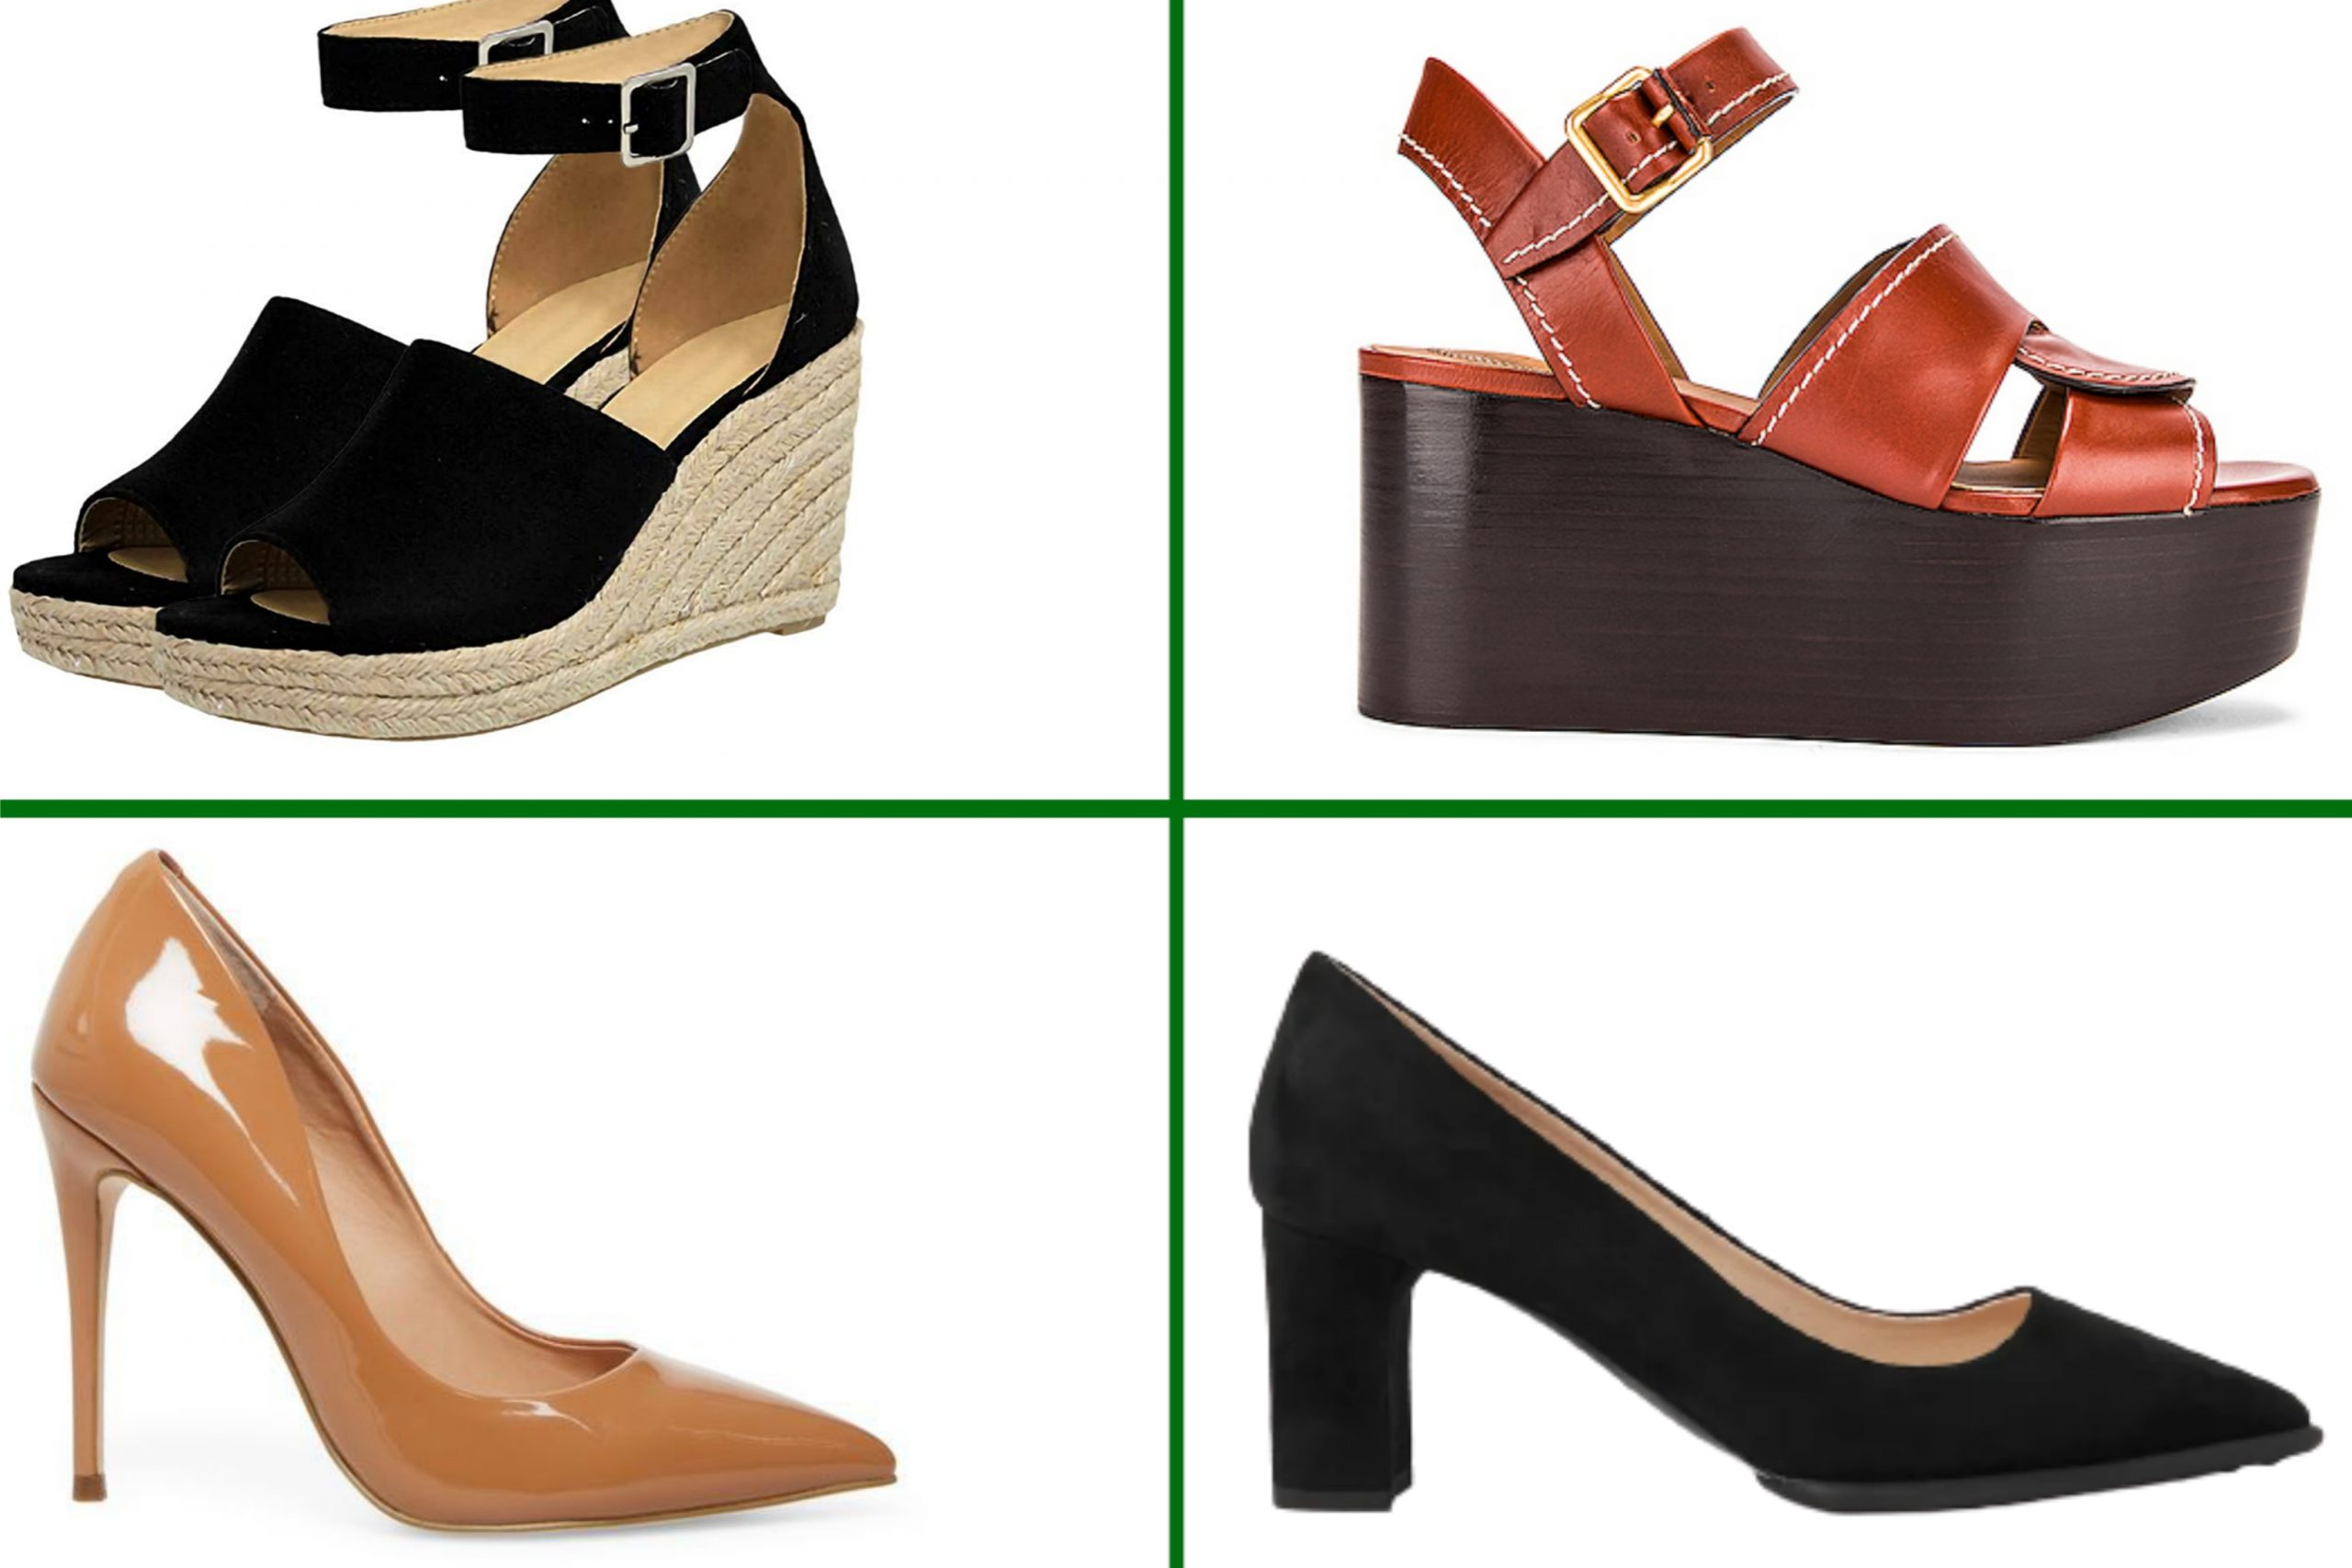 4 types of shoes pregnant women shouldn't wear